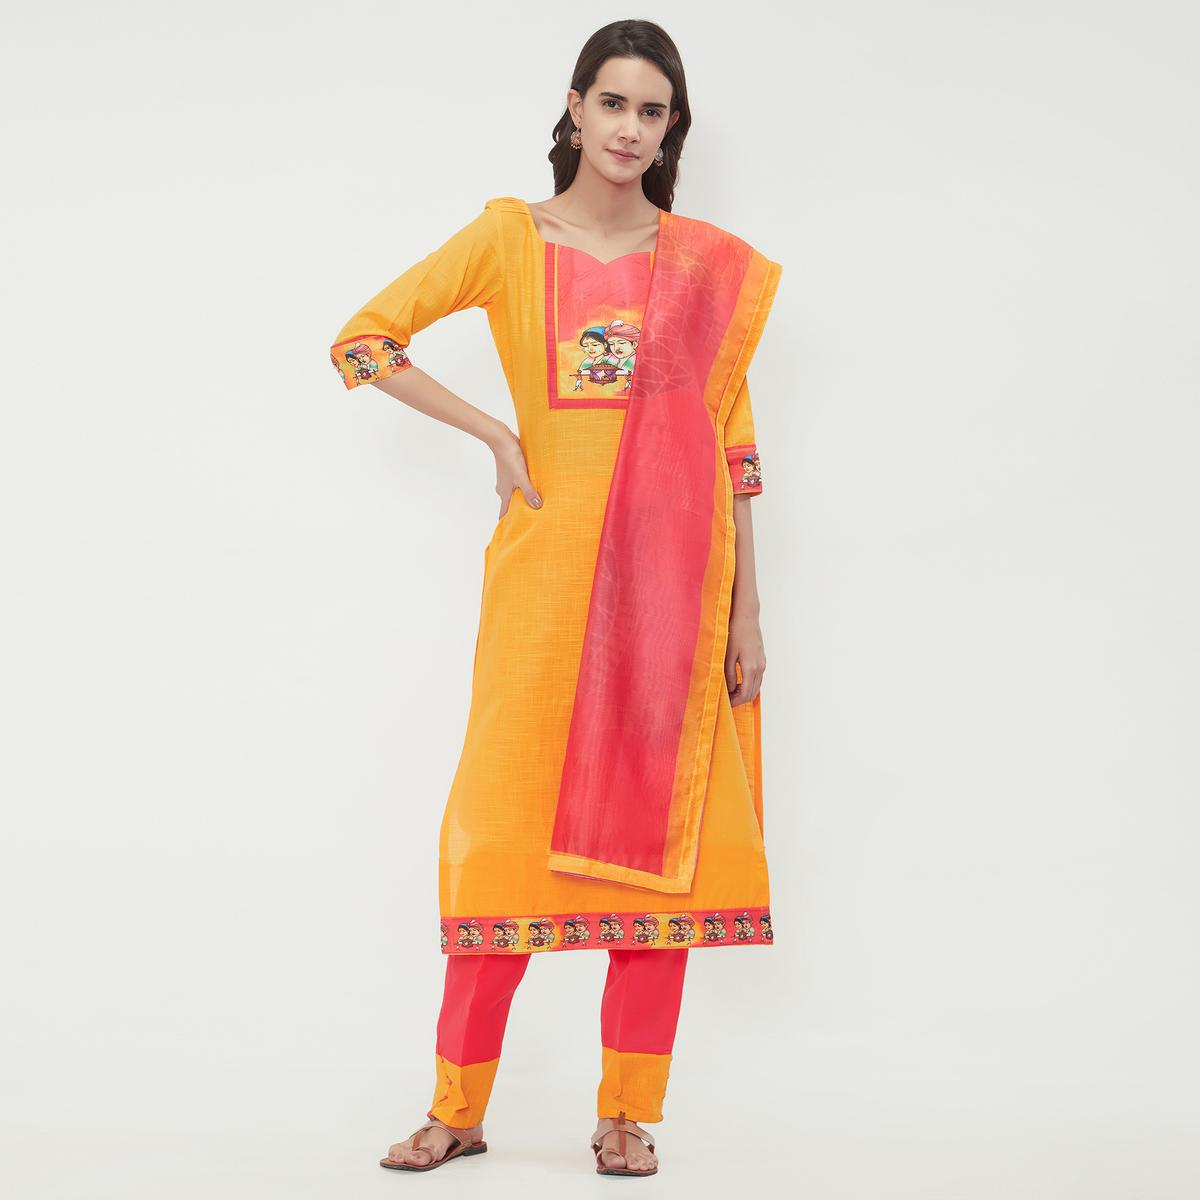 Viva N Diva Yellow Colored Cotton Salwar Suit